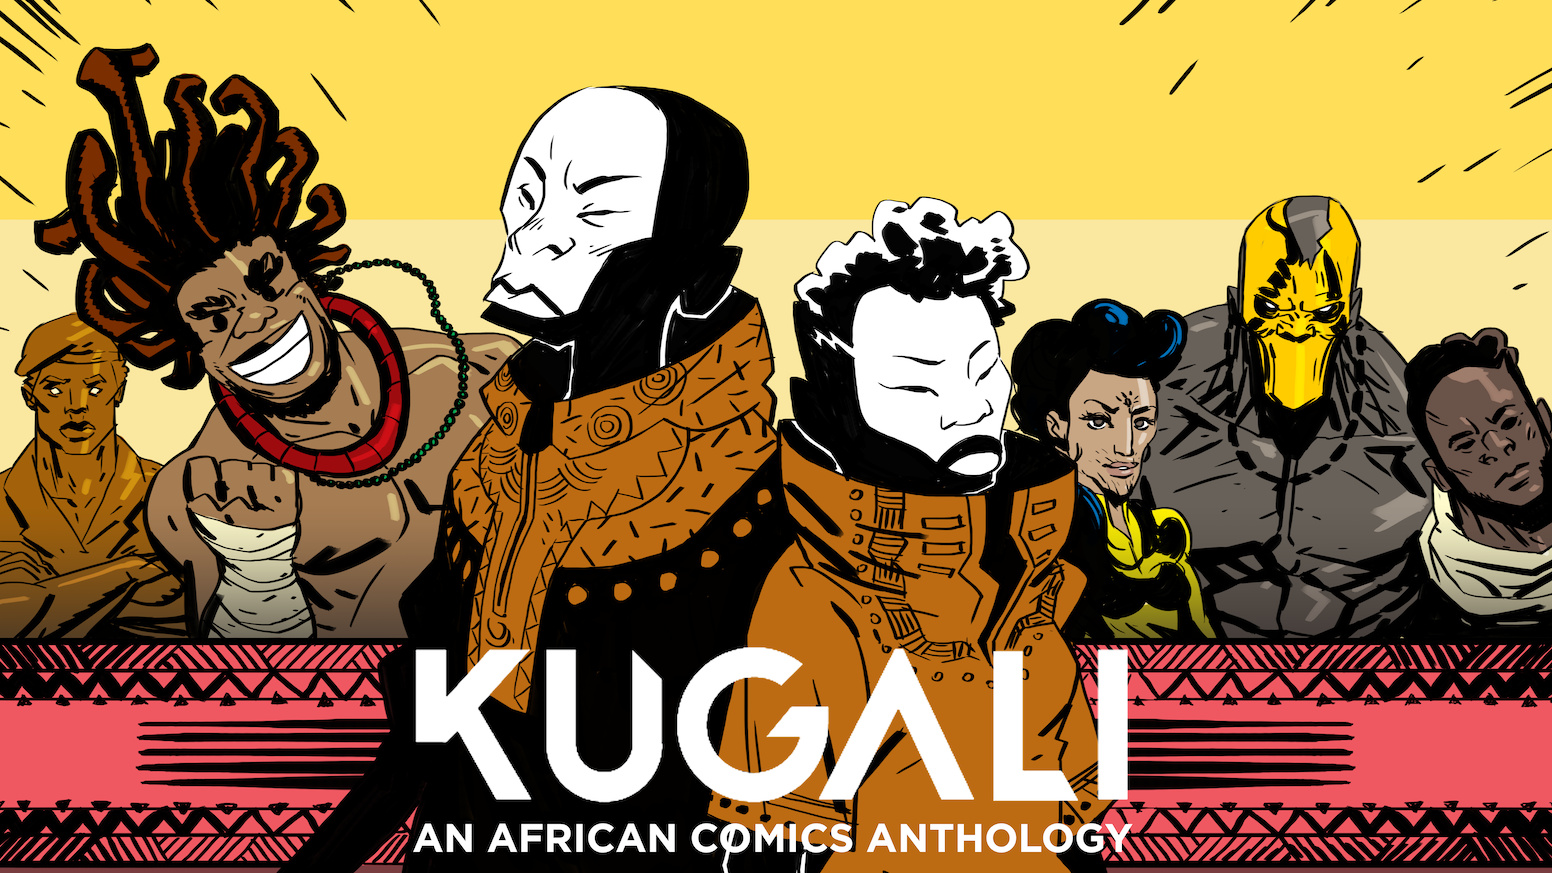 An anthology showcasing the best African stories.  These stories pay homage to the past, embrace the present and imagine the future.